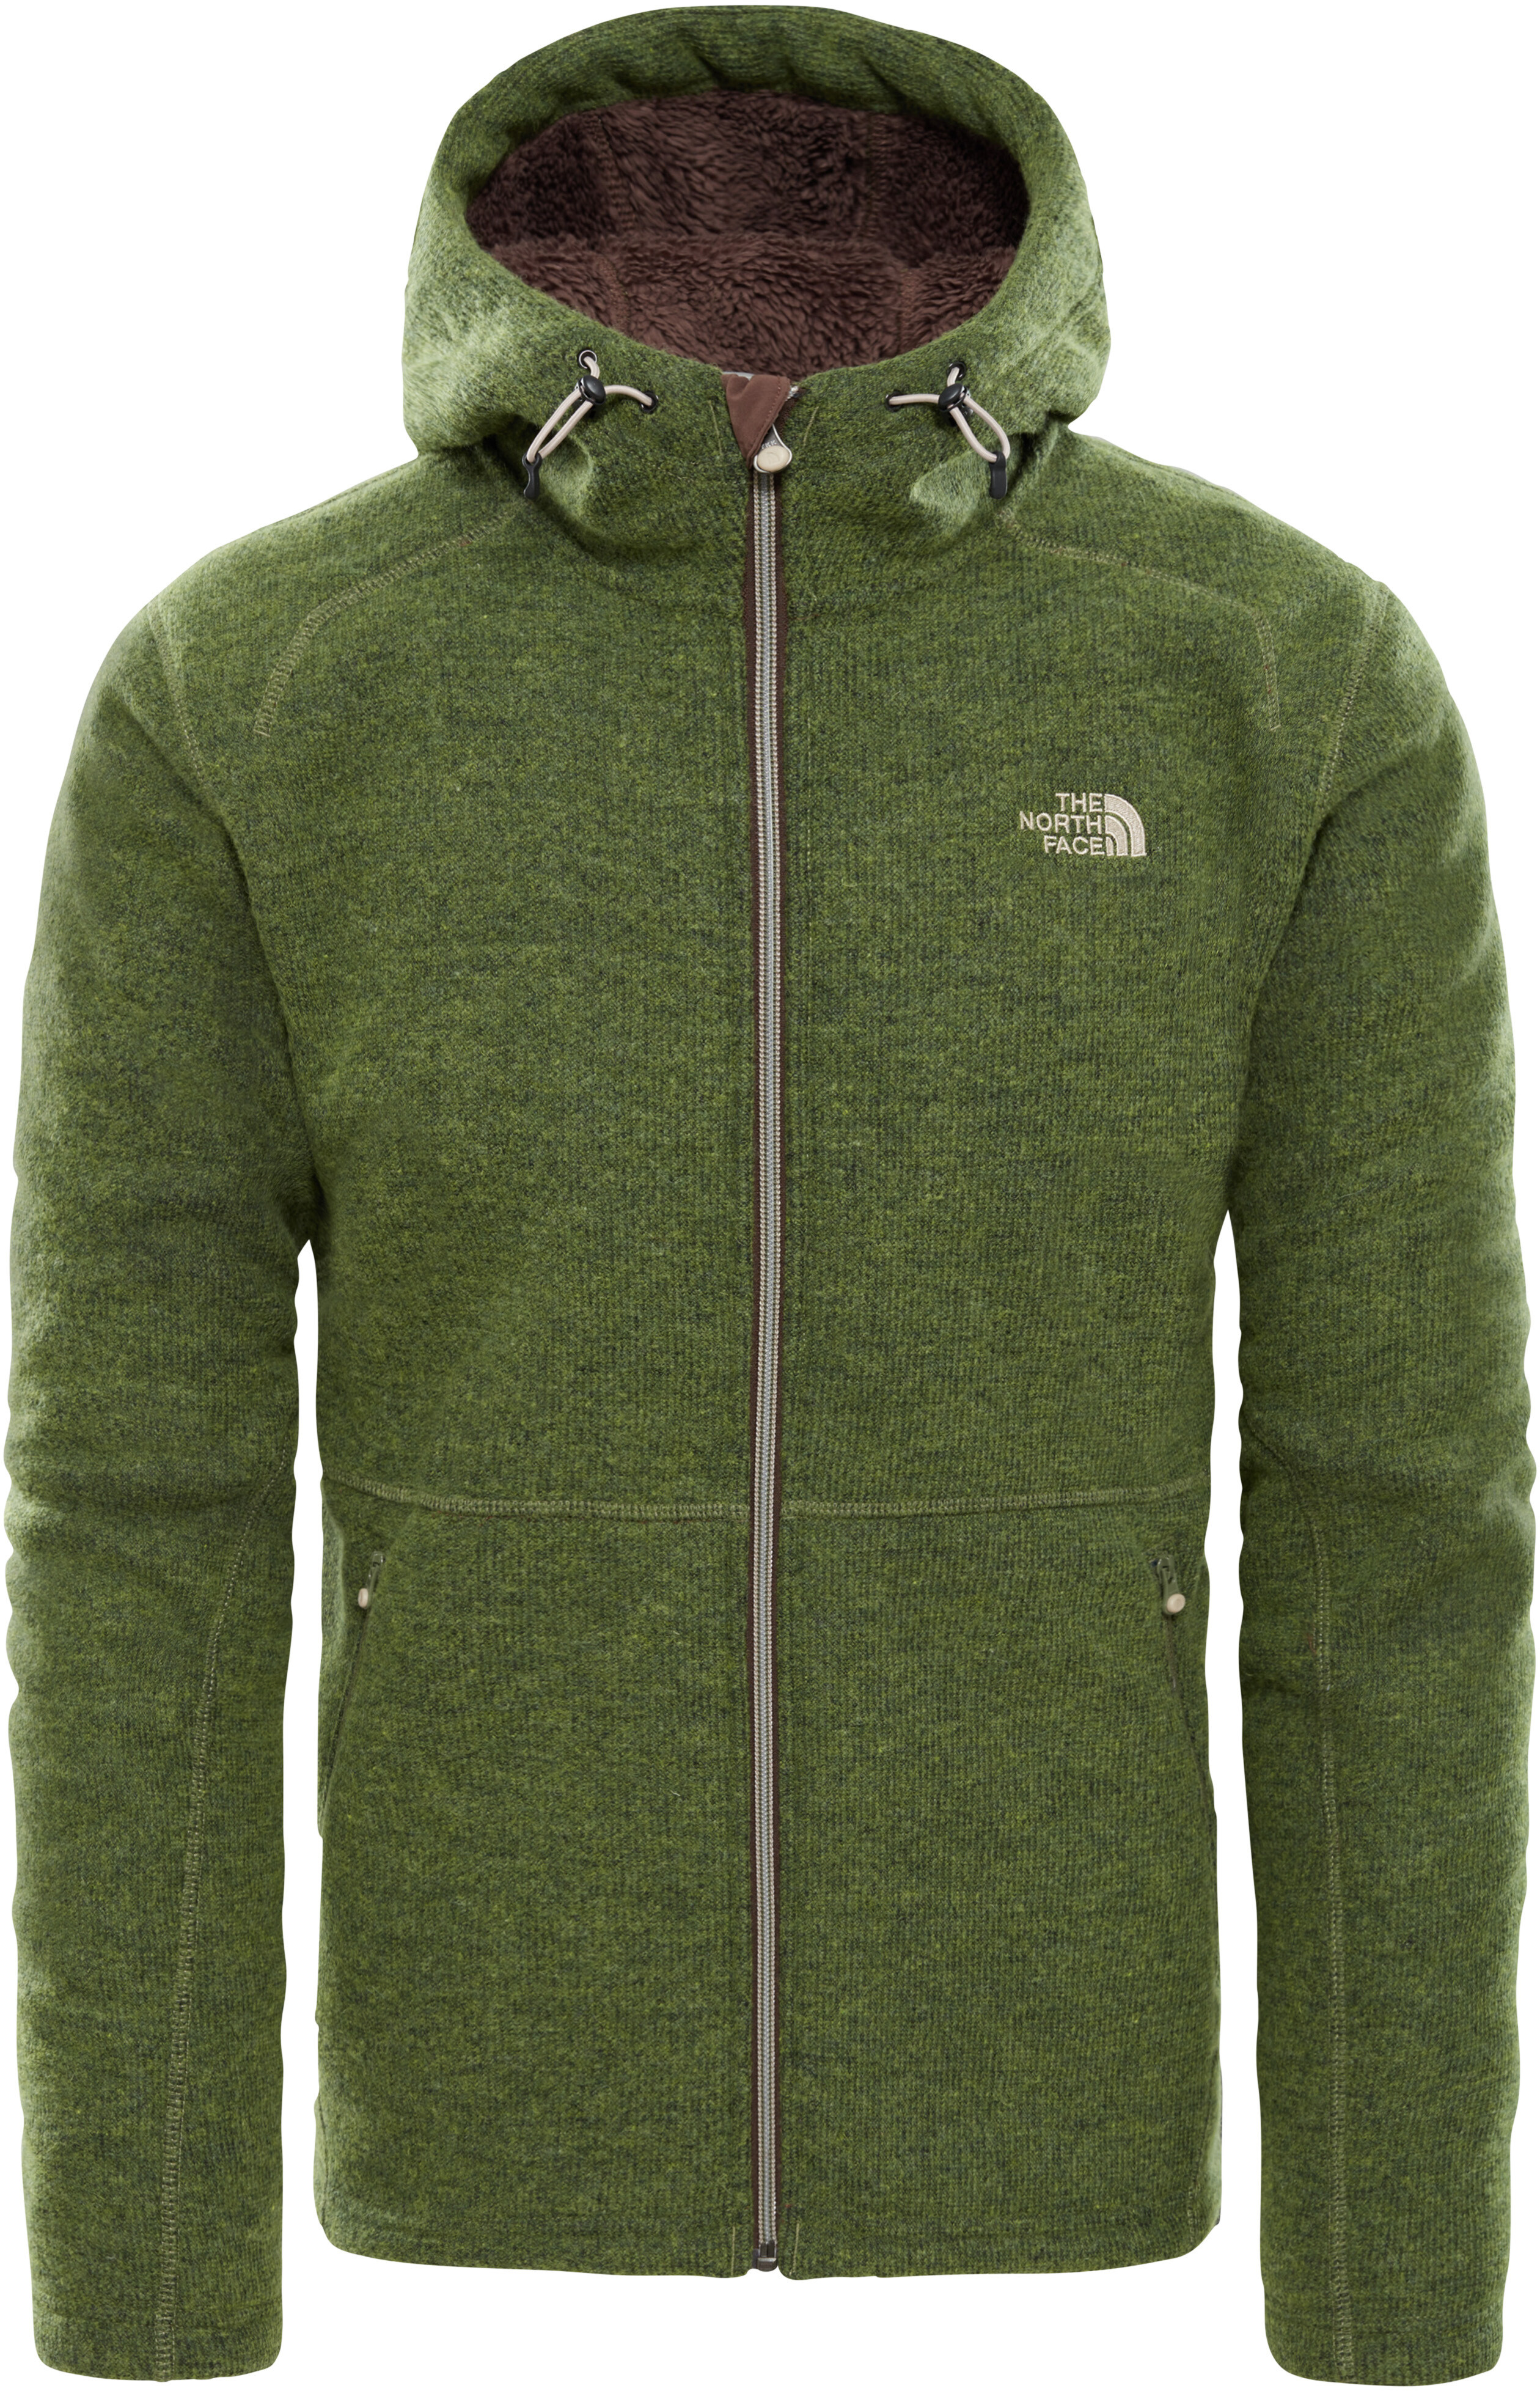 The North Face Zermatt Giacca Uomo verde 3e34c7a12191